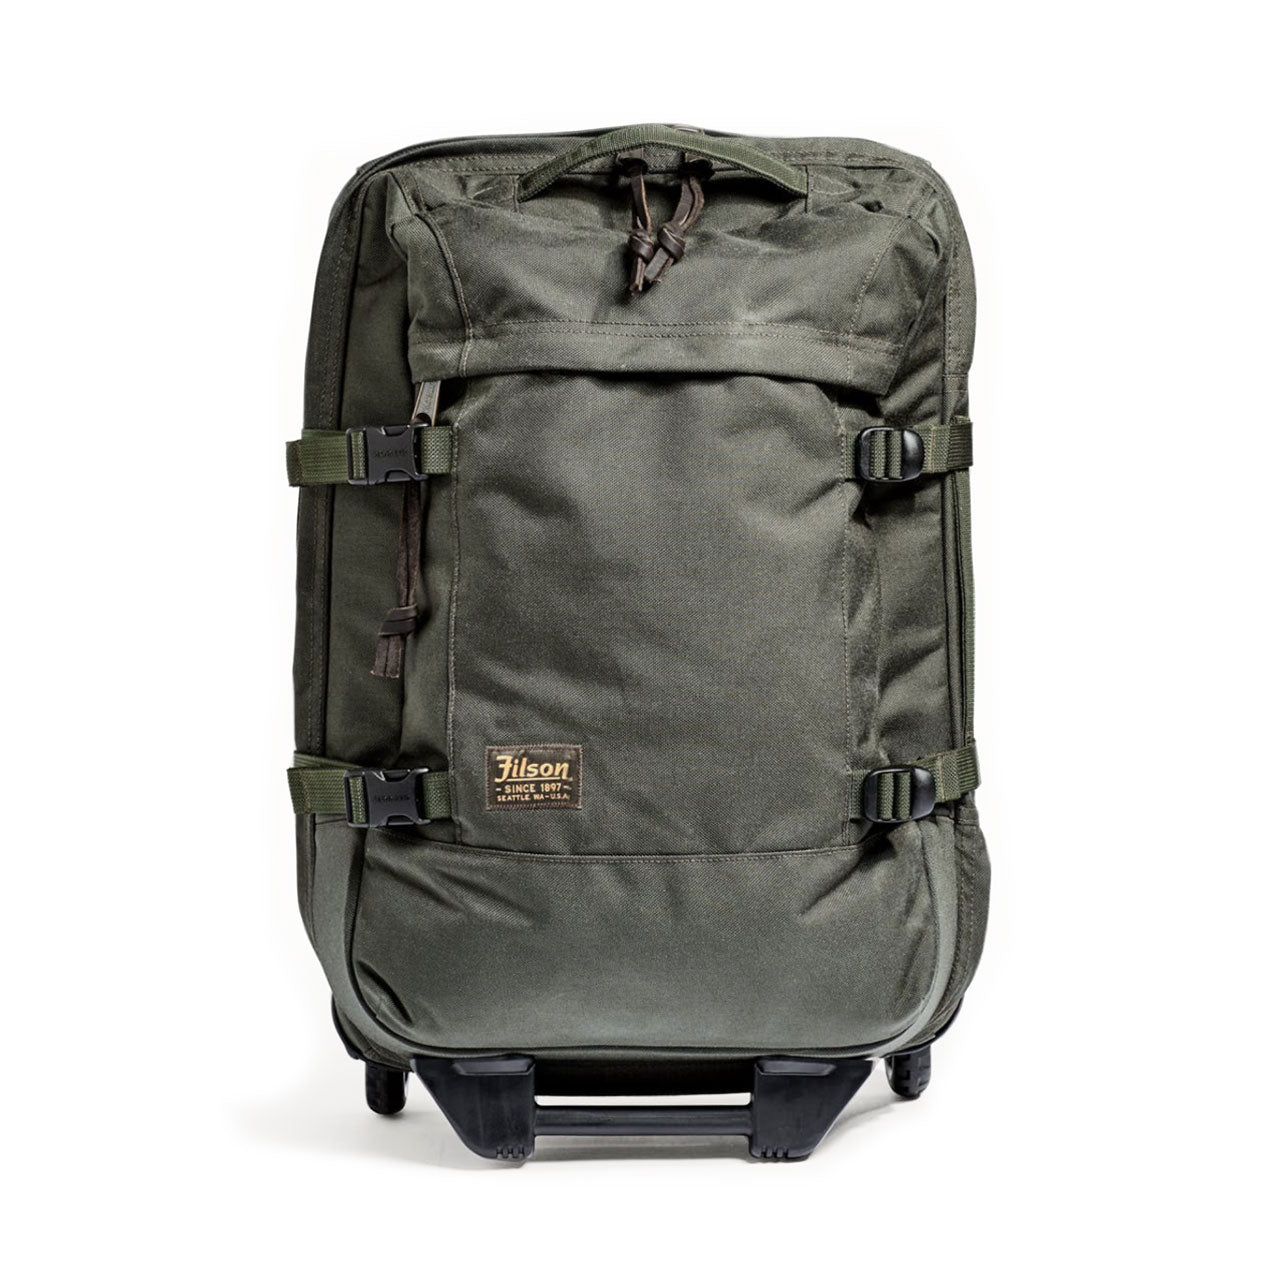 Filson Dryden Carry-On Bag